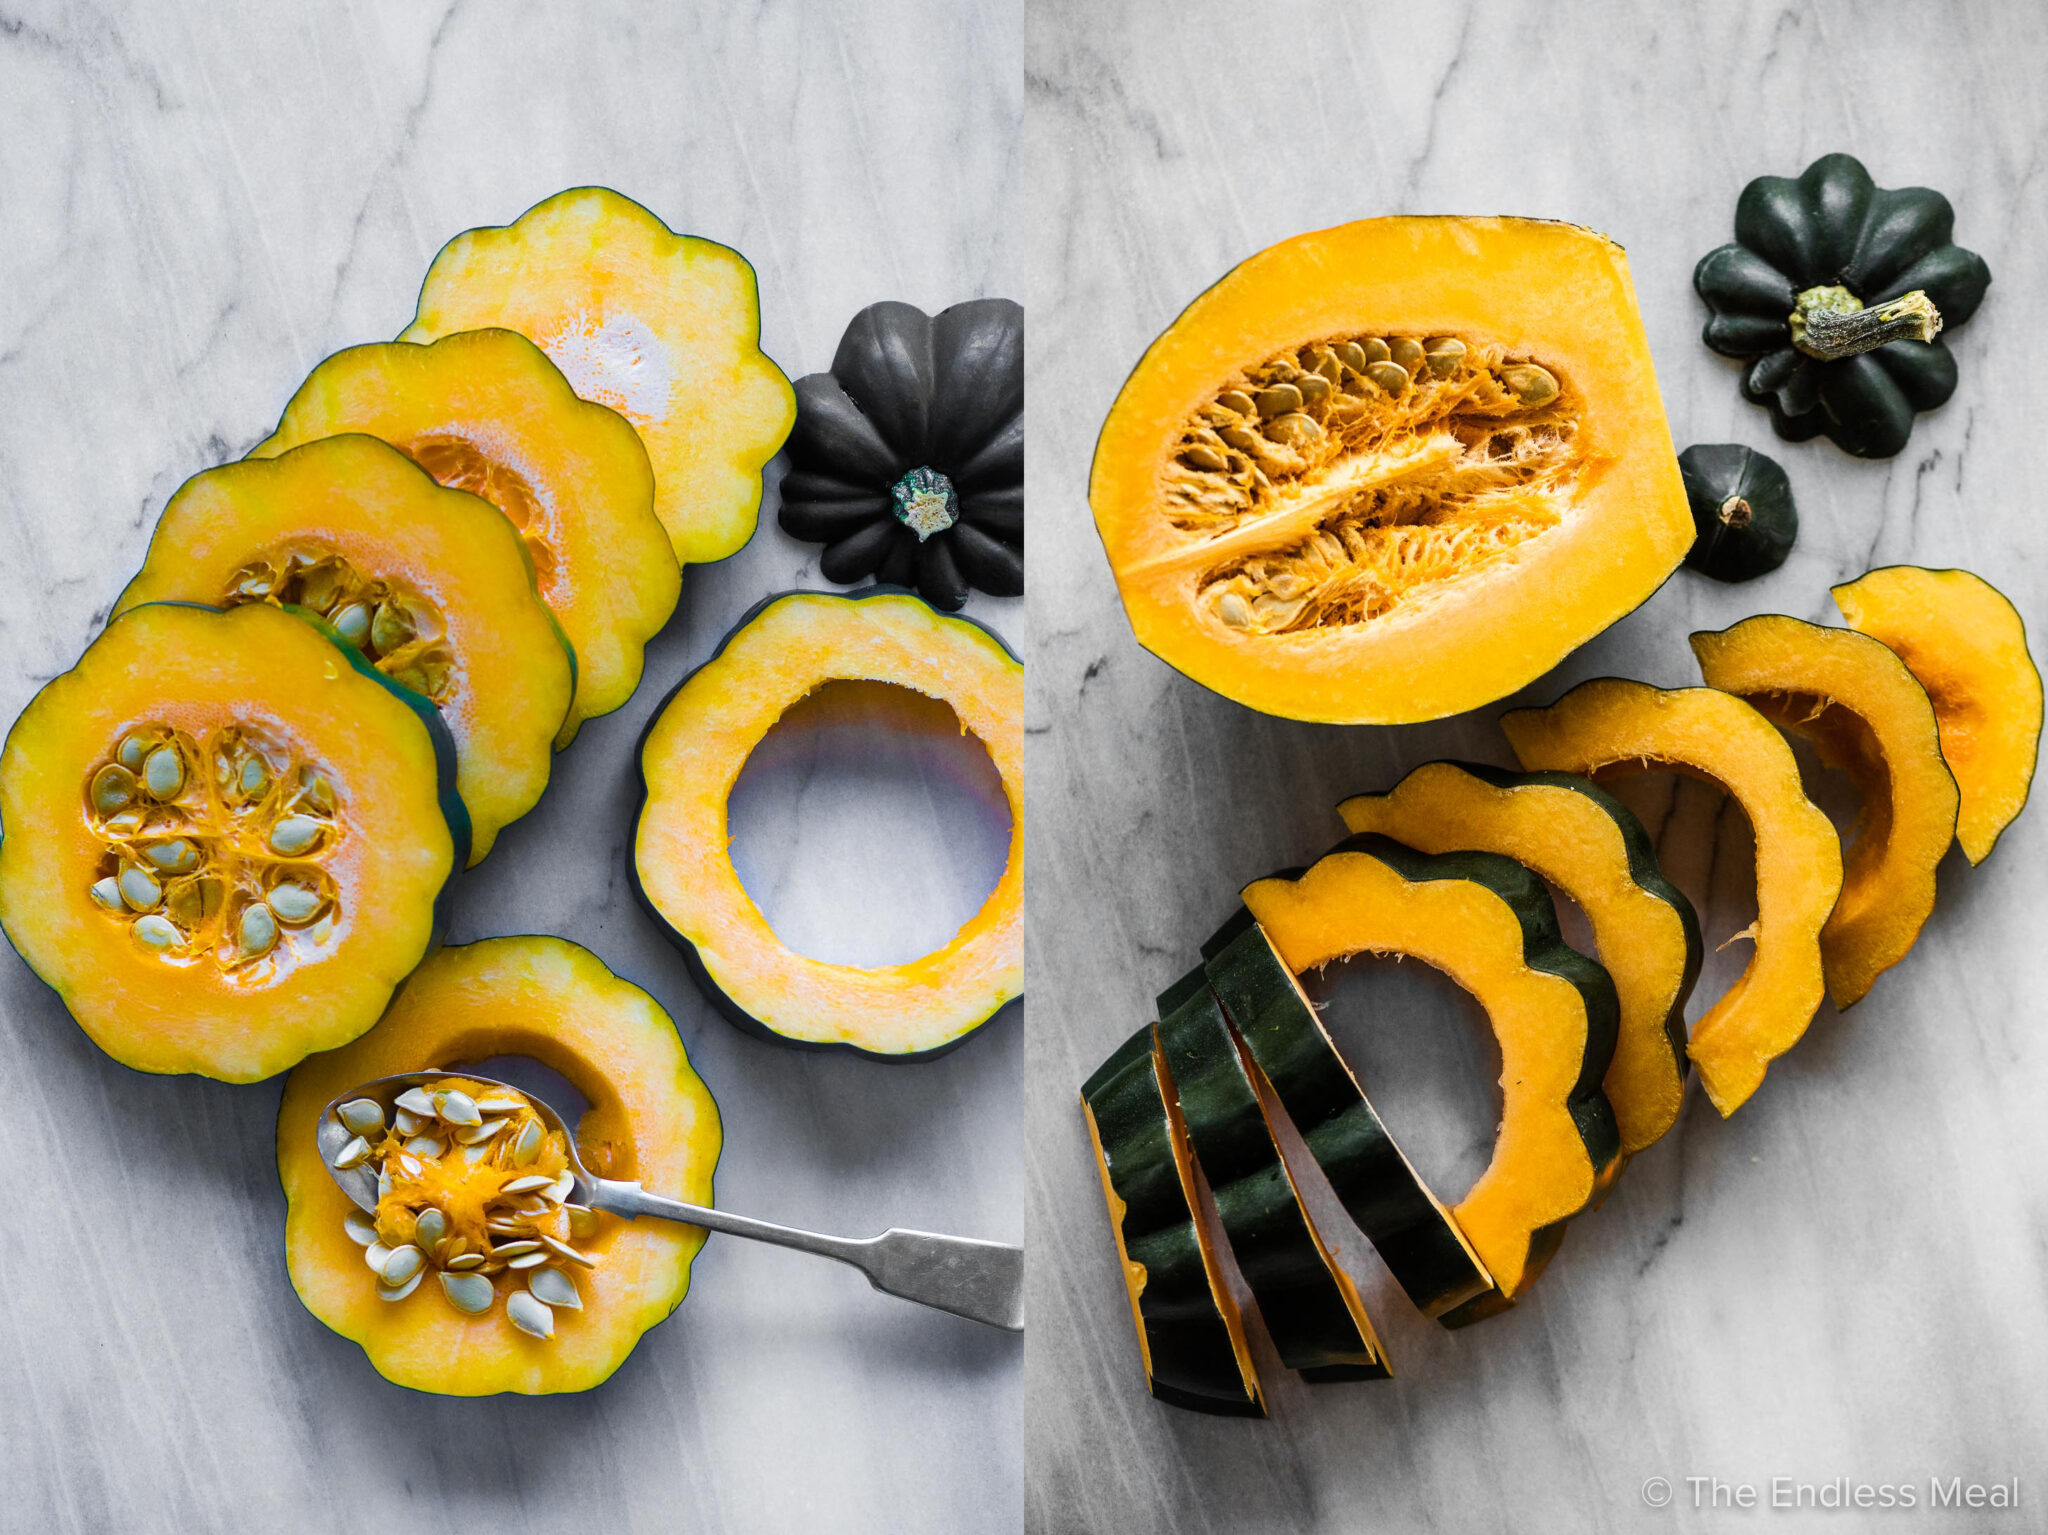 Two pictures showing two different ways to cut an acorn squash.